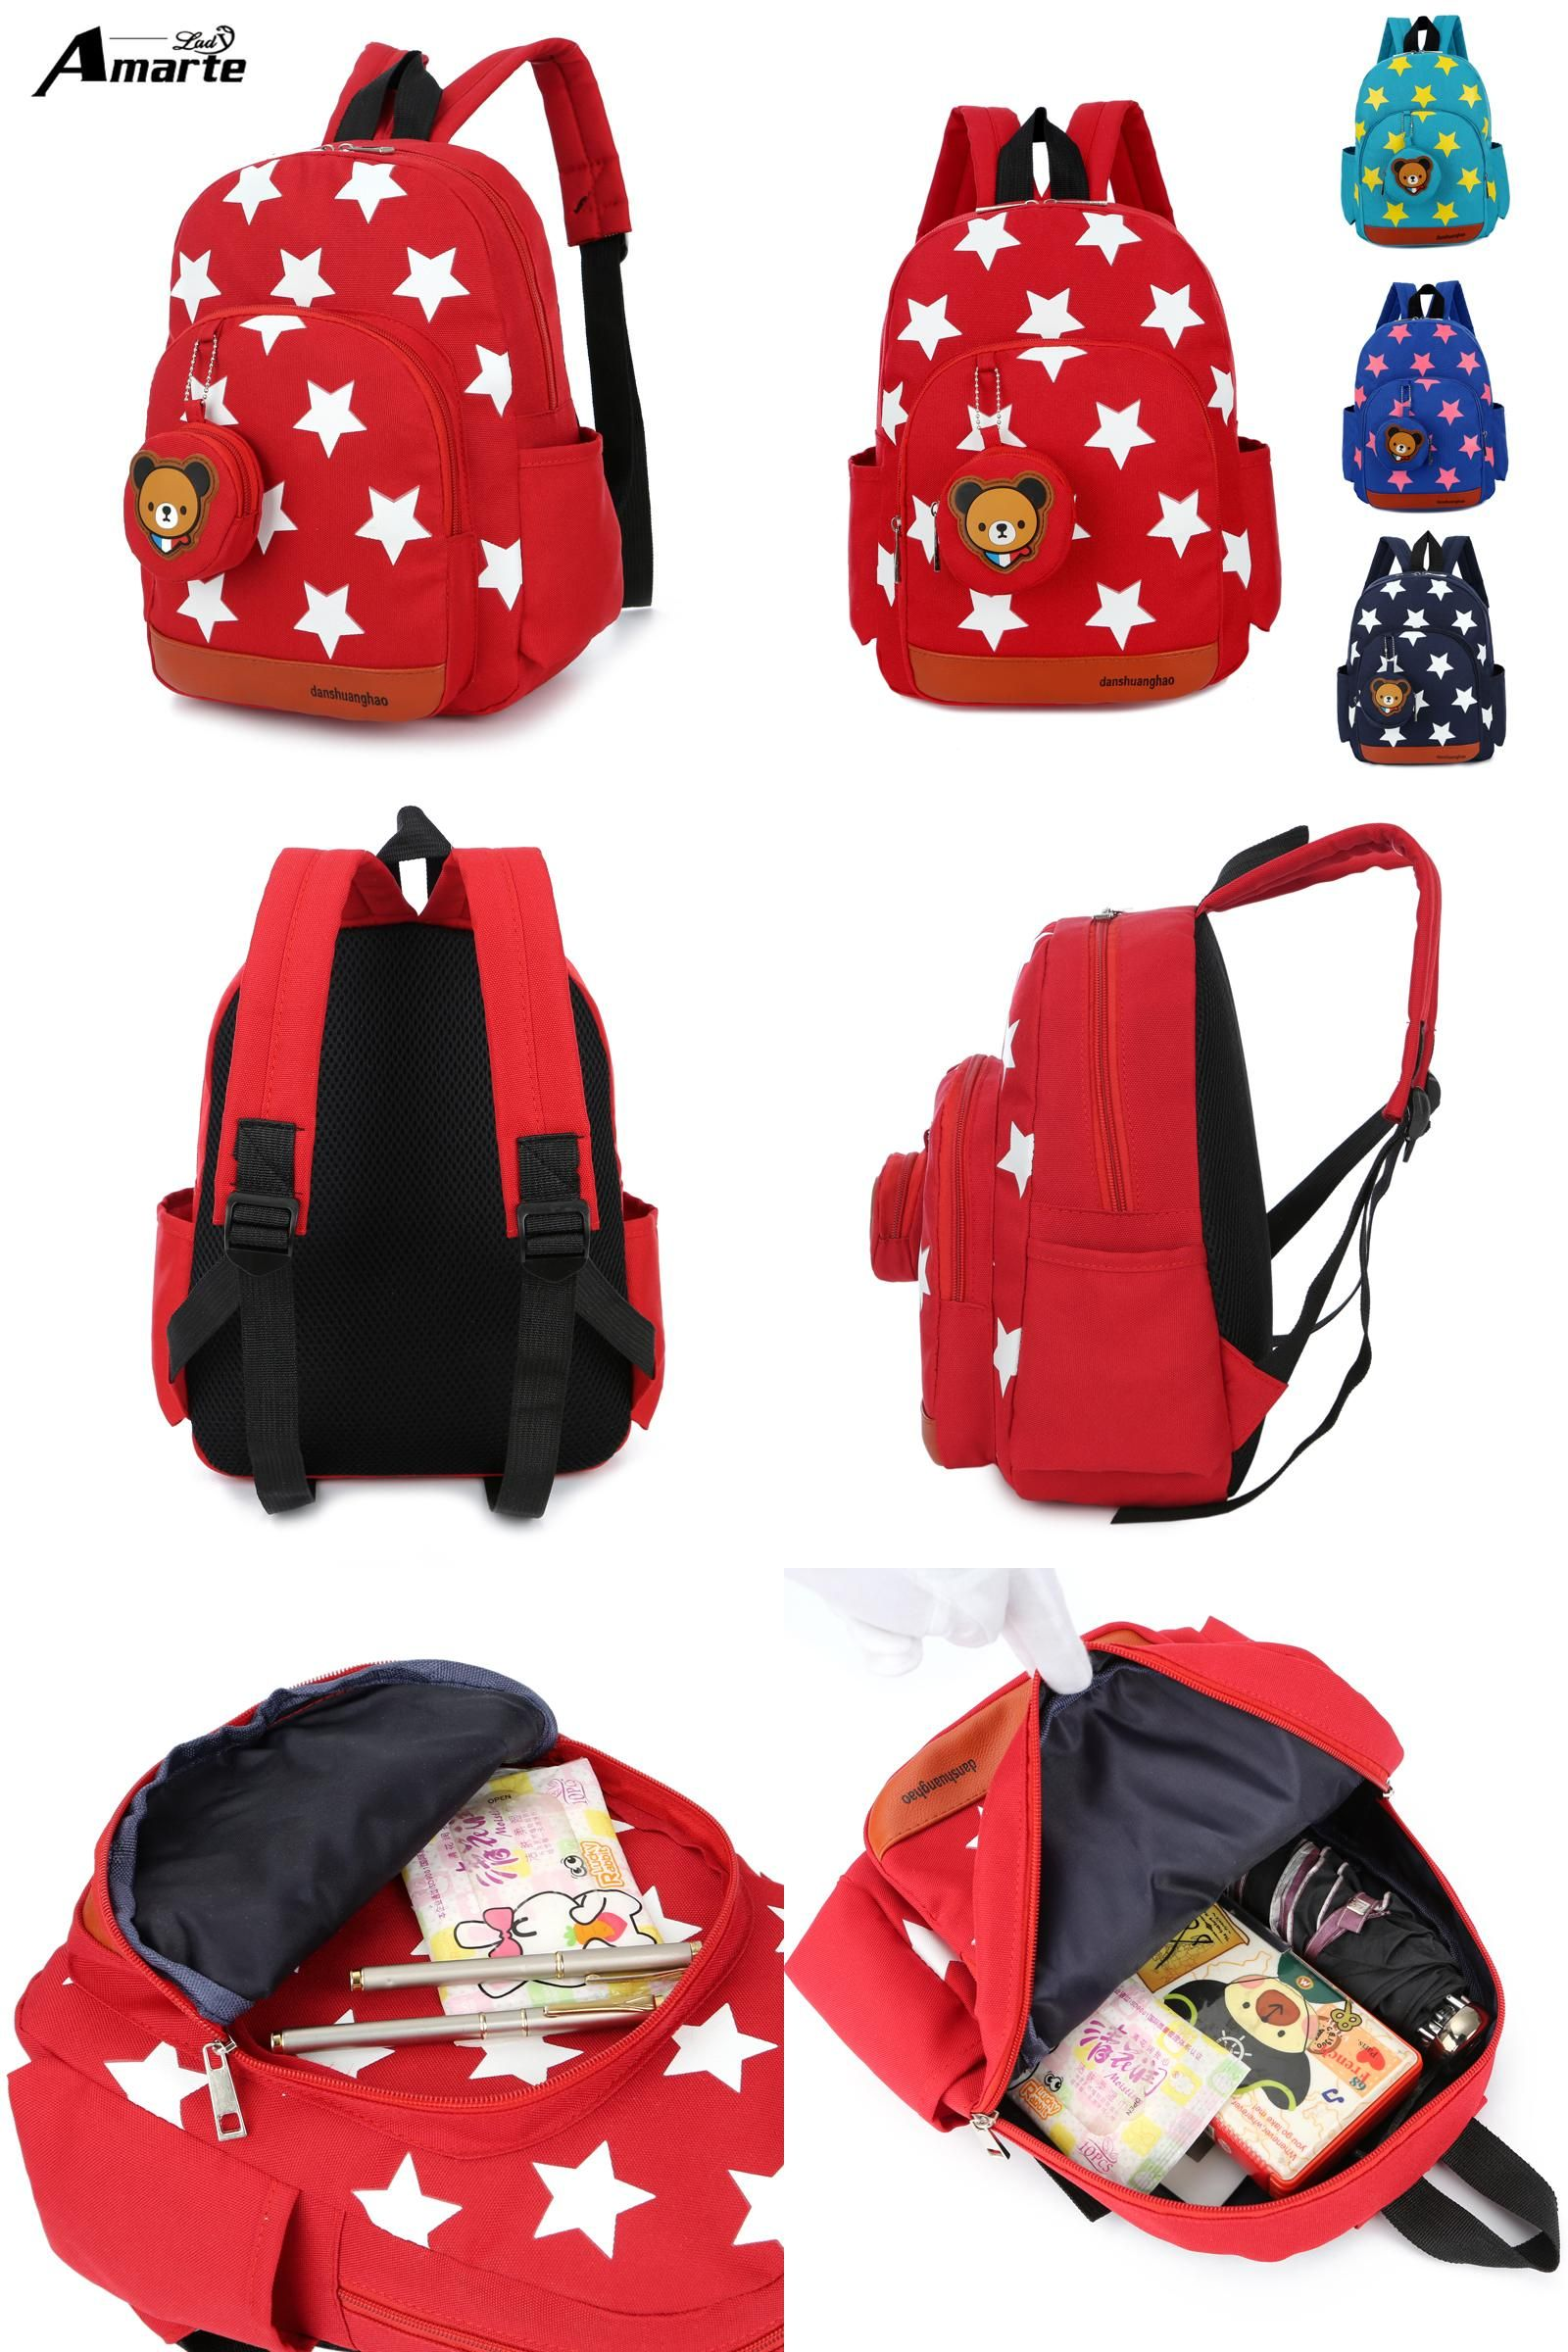 Visit to Buy  2017 New Cute Starts Printed Kids Bags Fashion Nylon  Children Backpacks 79ee570c1f